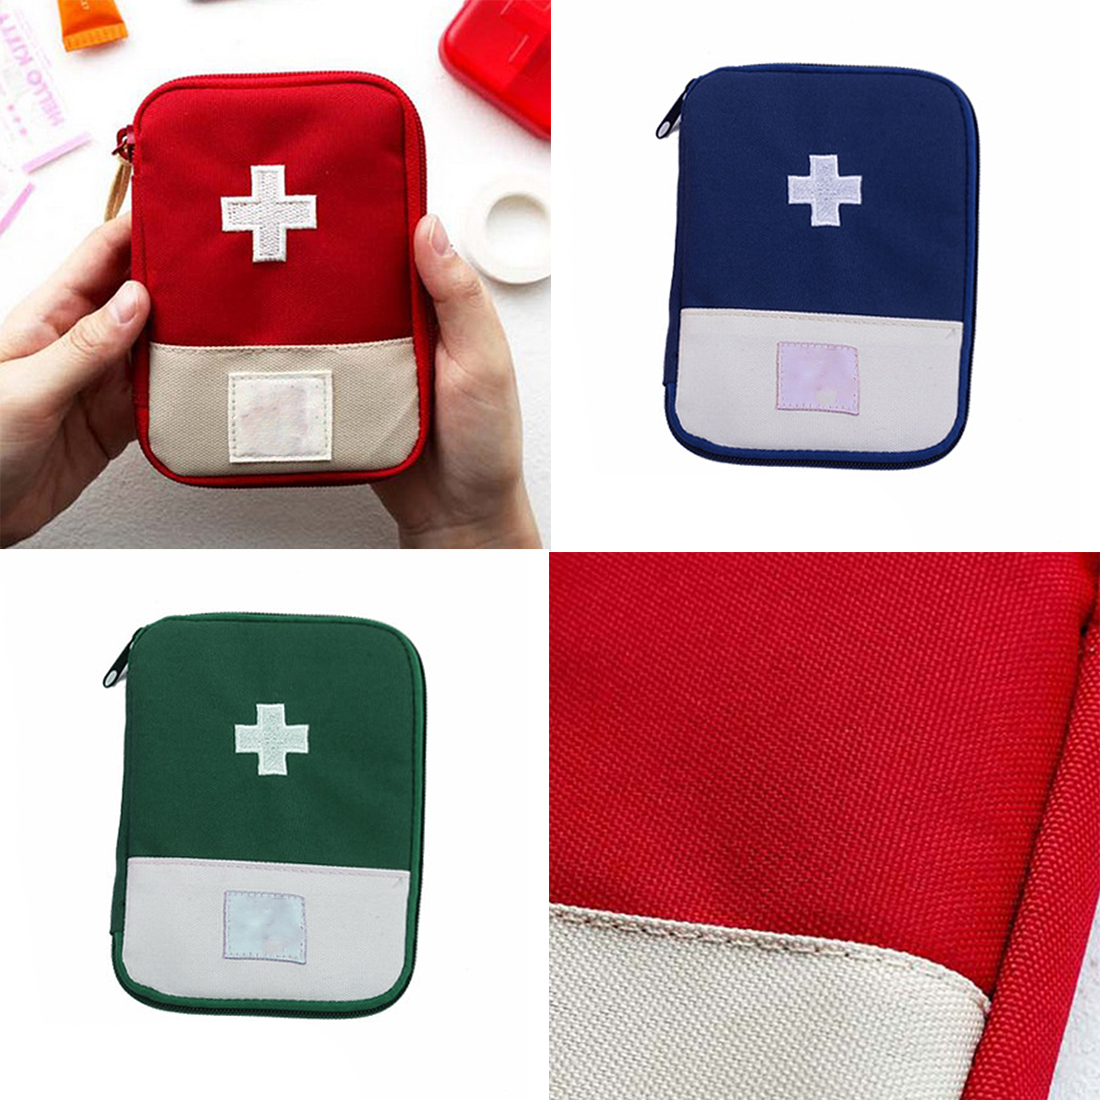 Practical Outdoor Home Survival Portable Edc Camping Equipment First Aid Kit Bag Case Convenient Handle For Easy-carrying